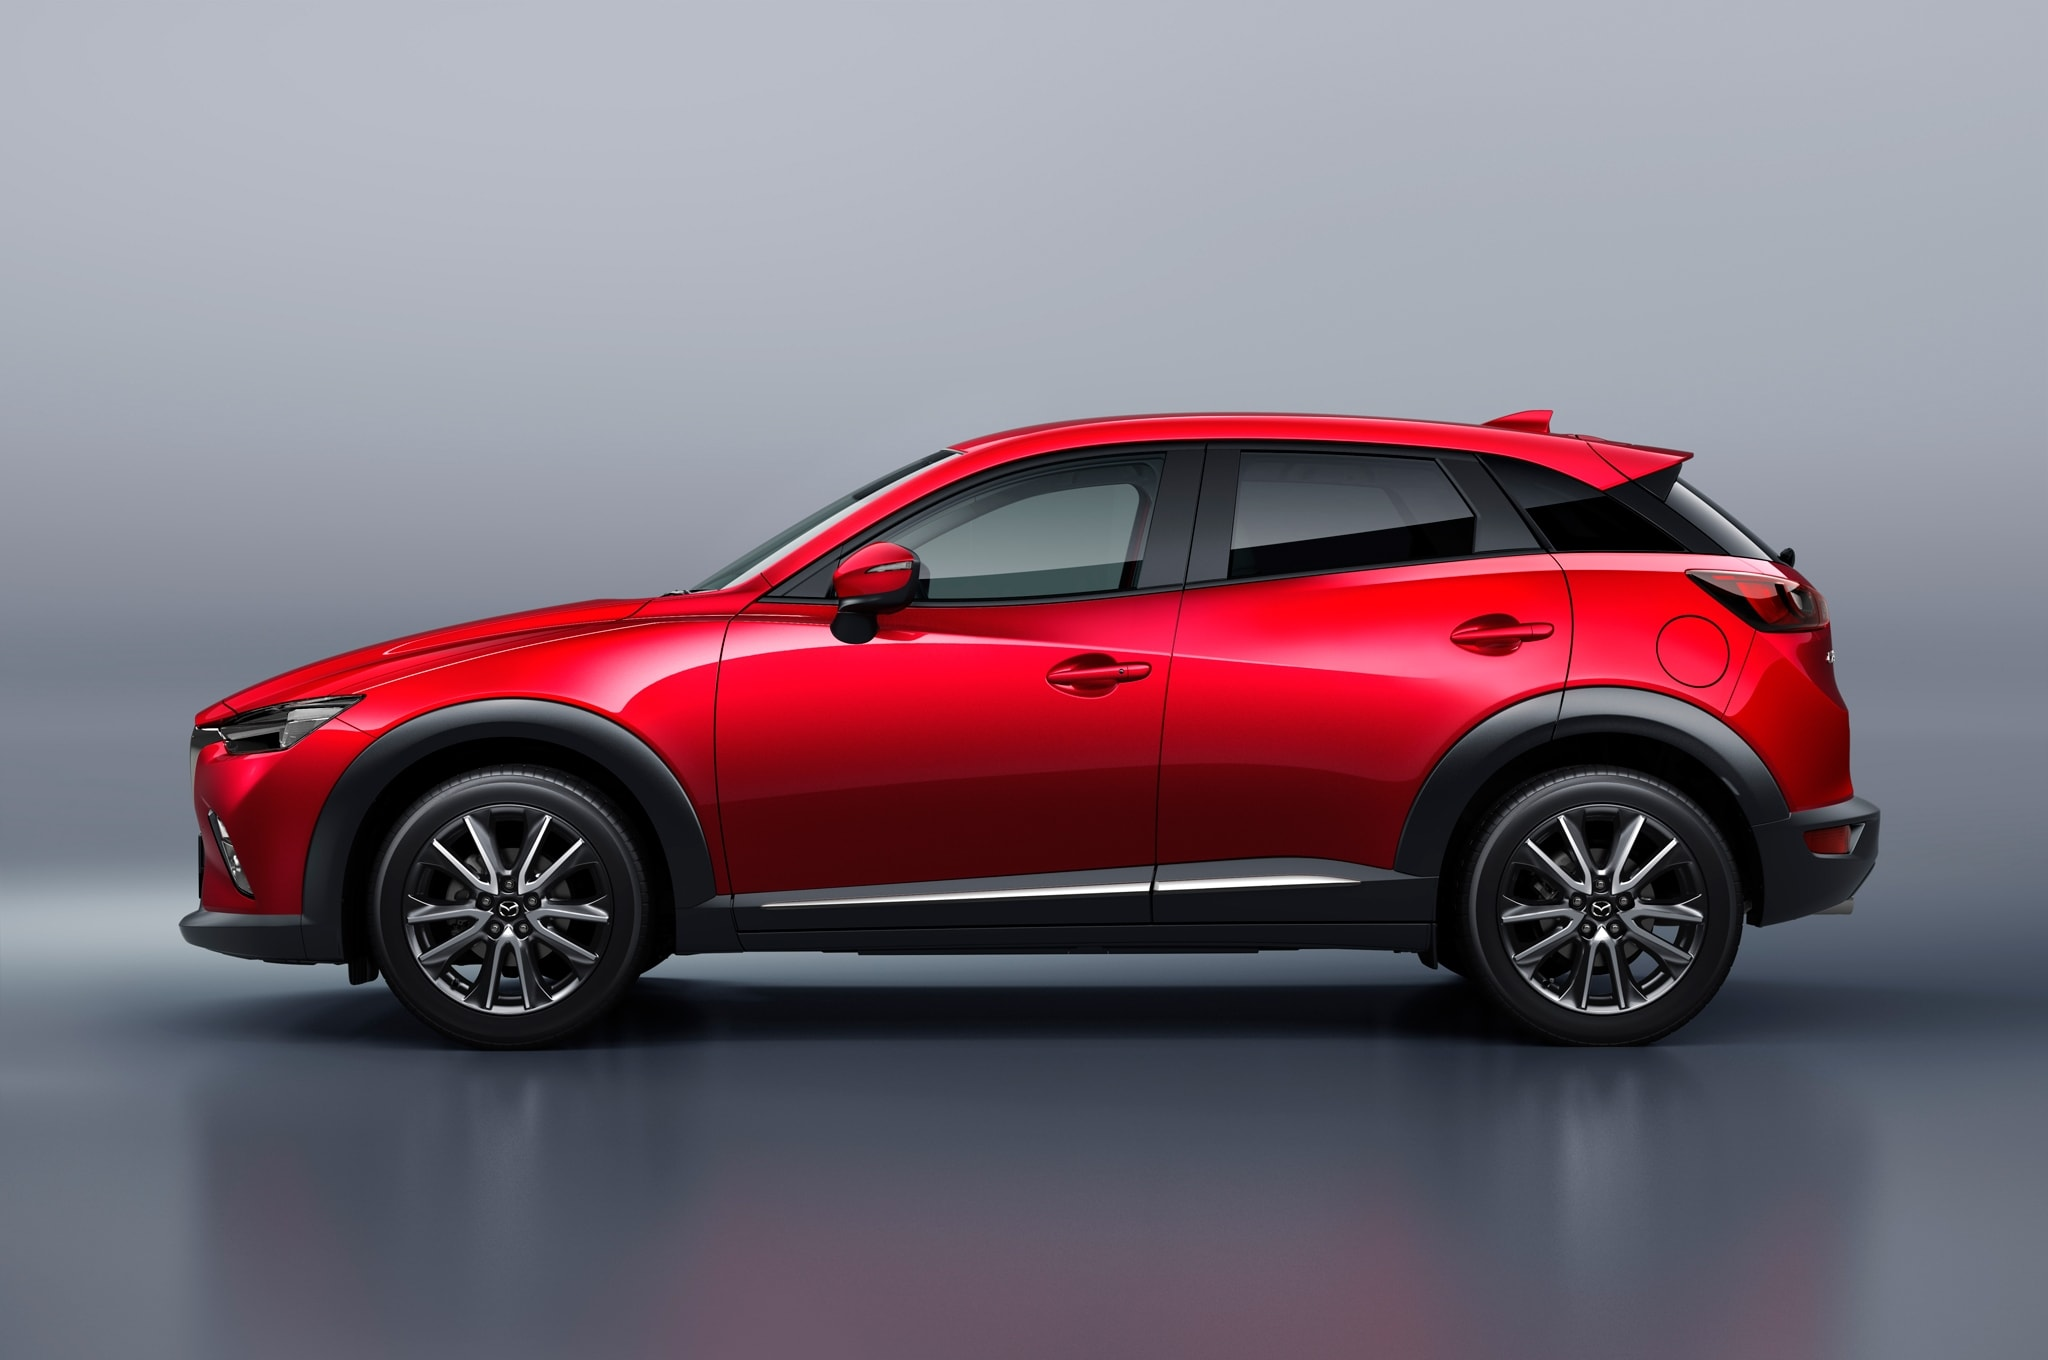 Mazda CX-3 Background